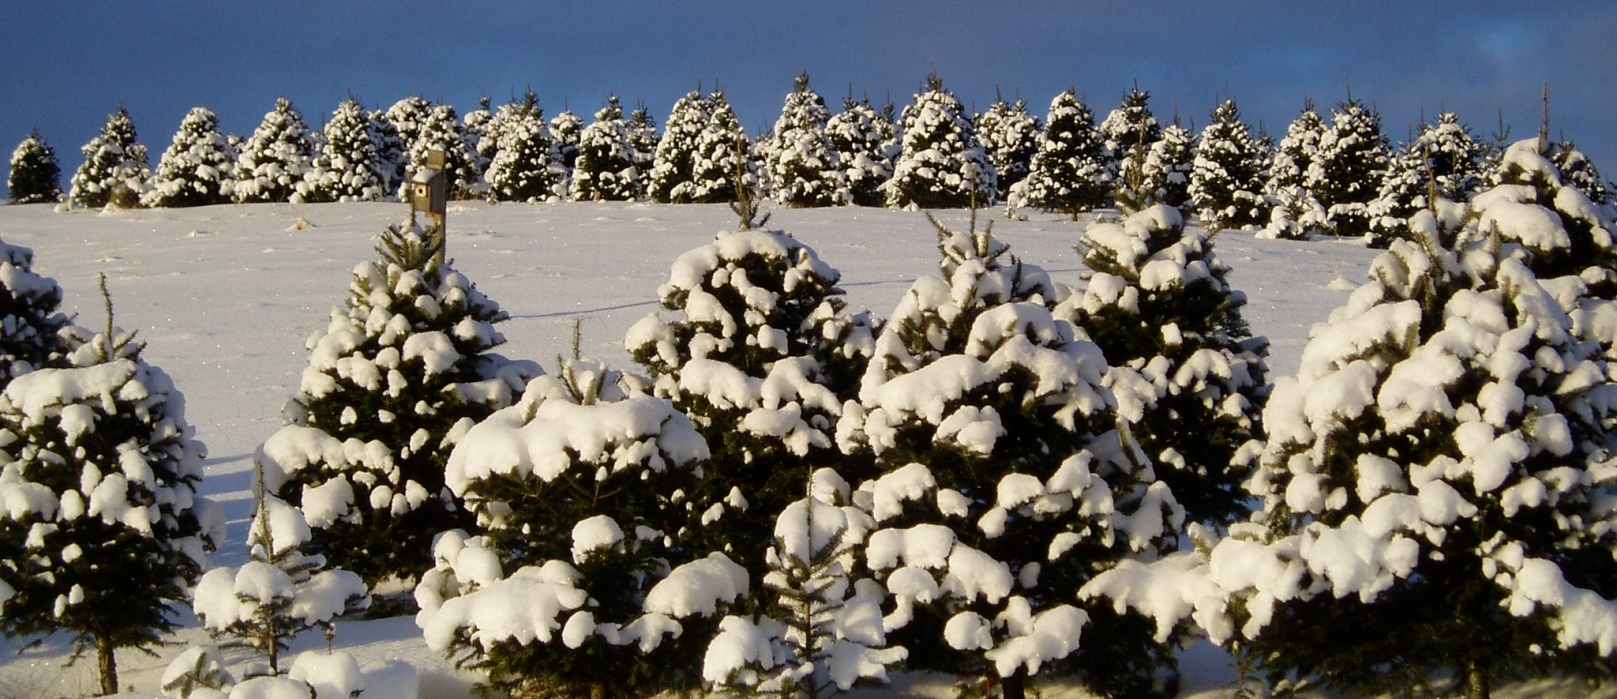 Rows of Christmas trees are covered in snow in wintertime.